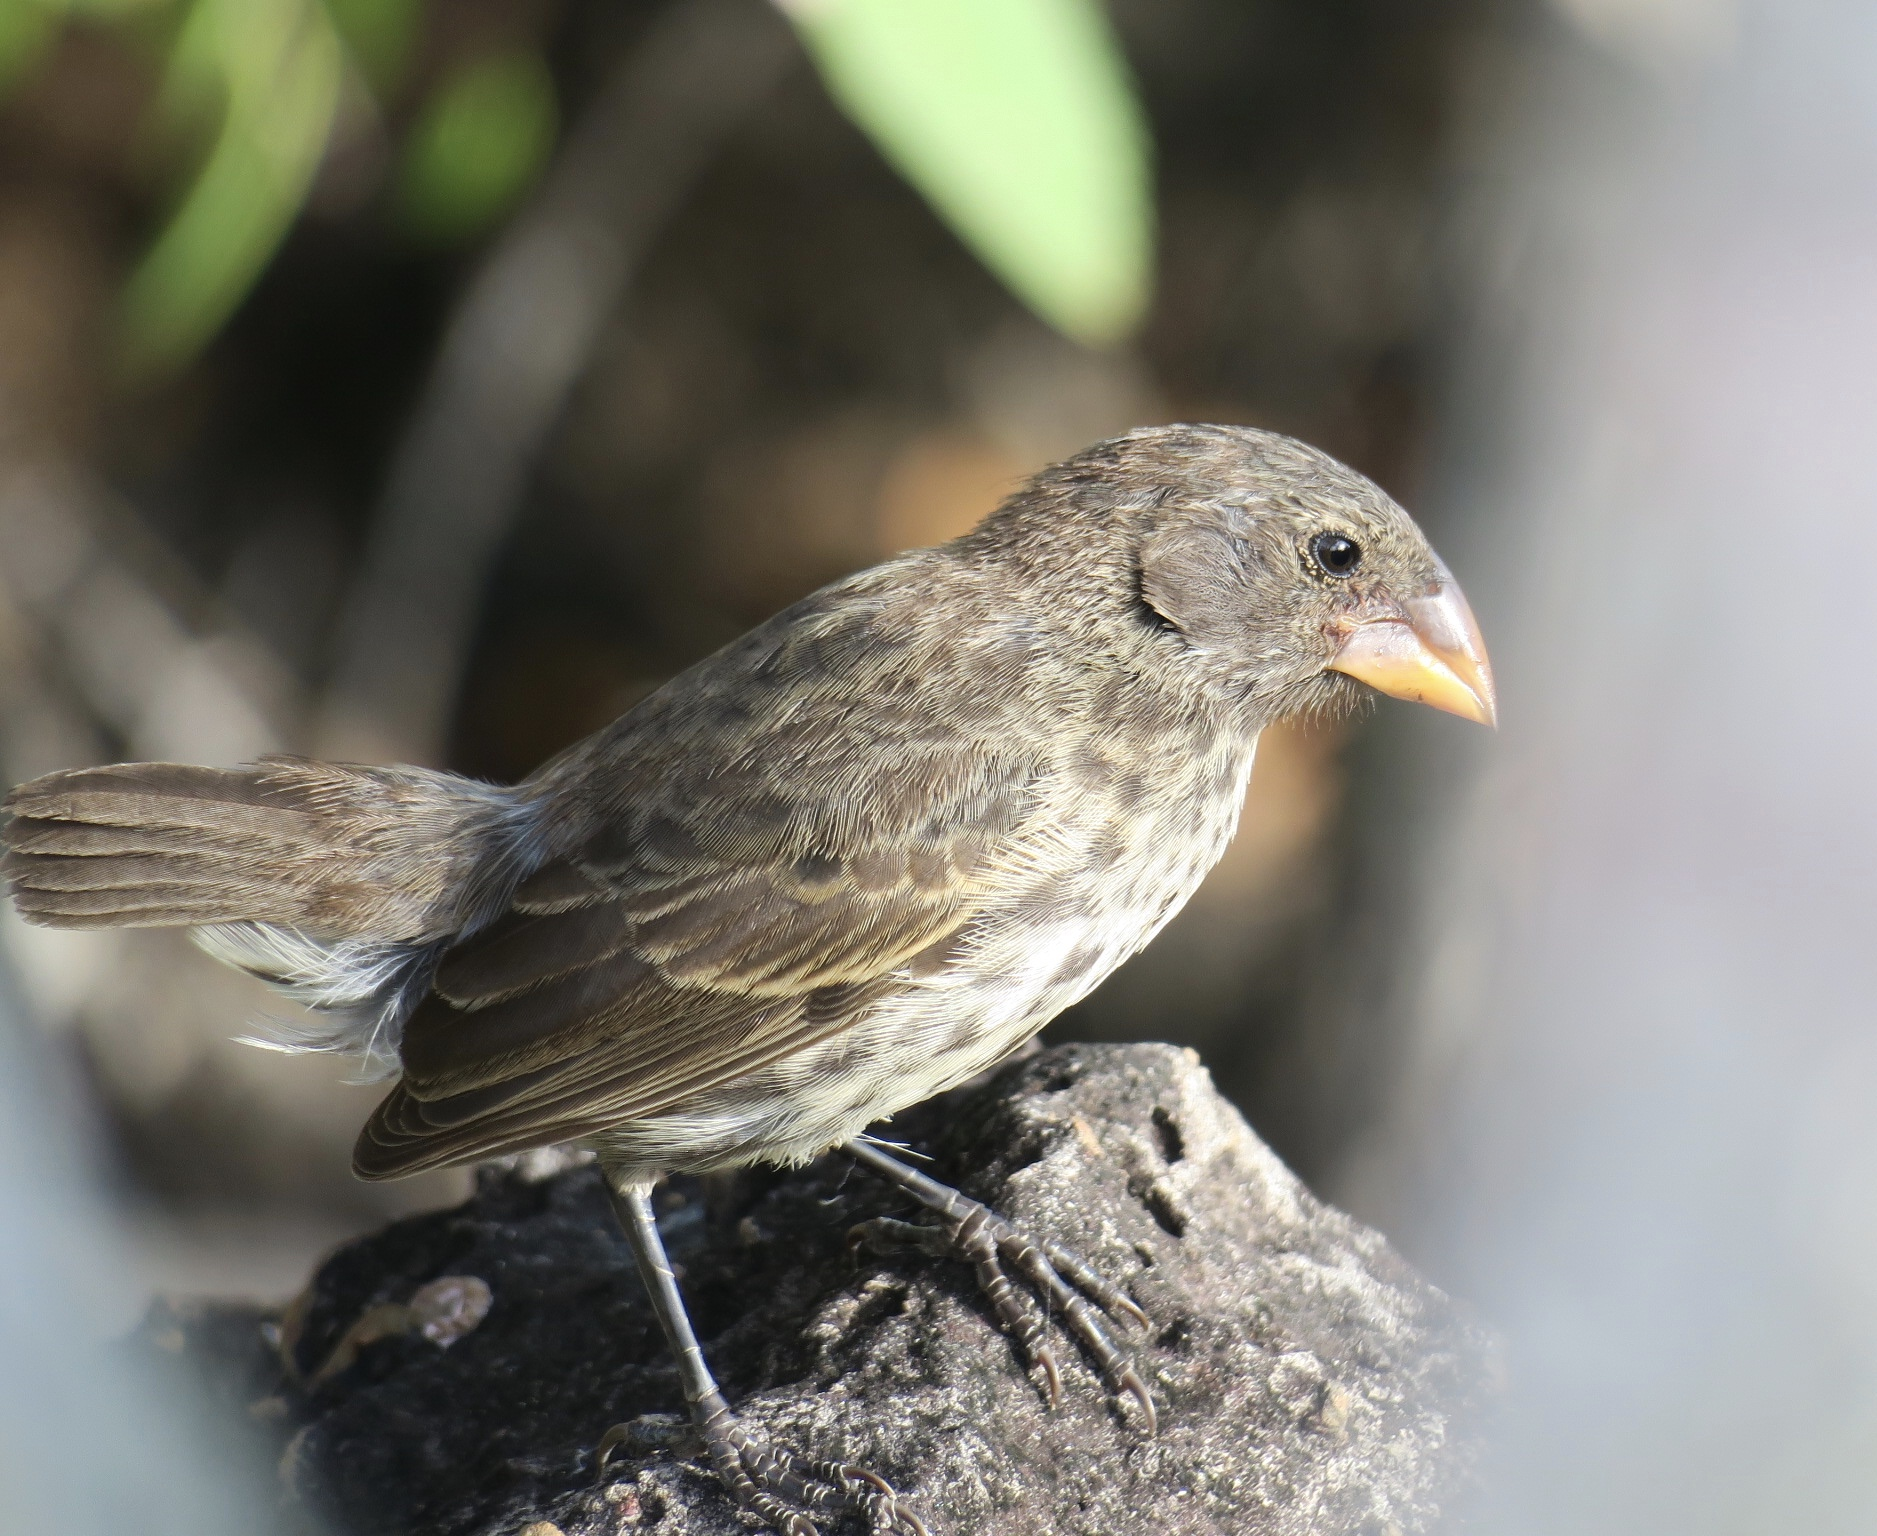 Darwin S Finches Of The Galapagos Islands Chasing Dreams